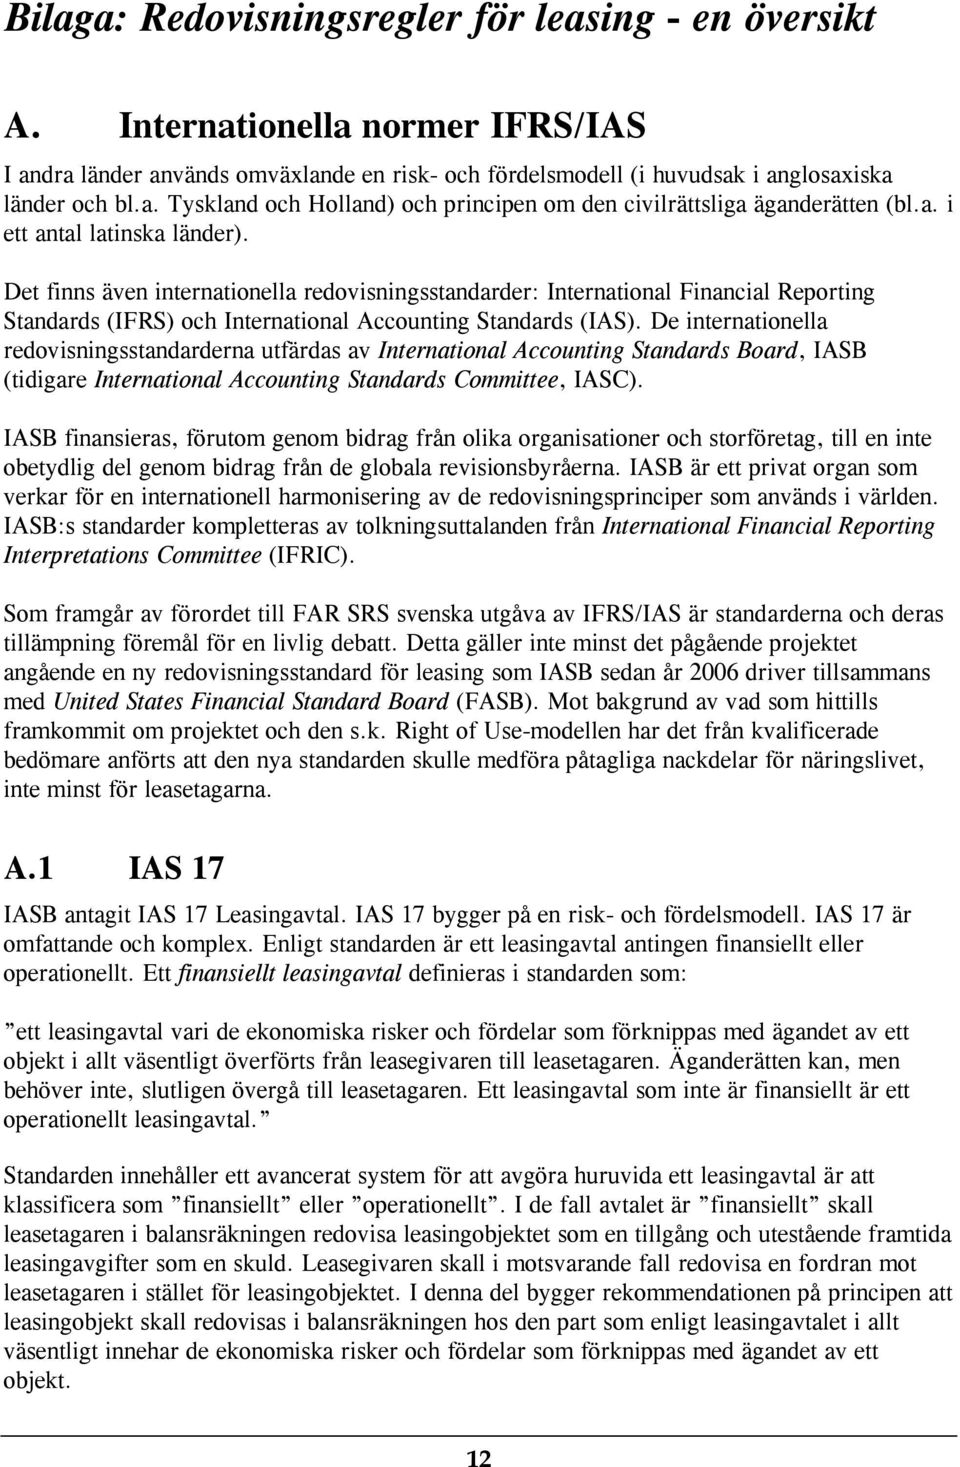 De internationella redovisningsstandarderna utfärdas av International Accounting Standards Board, IASB (tidigare International Accounting Standards Committee, IASC).